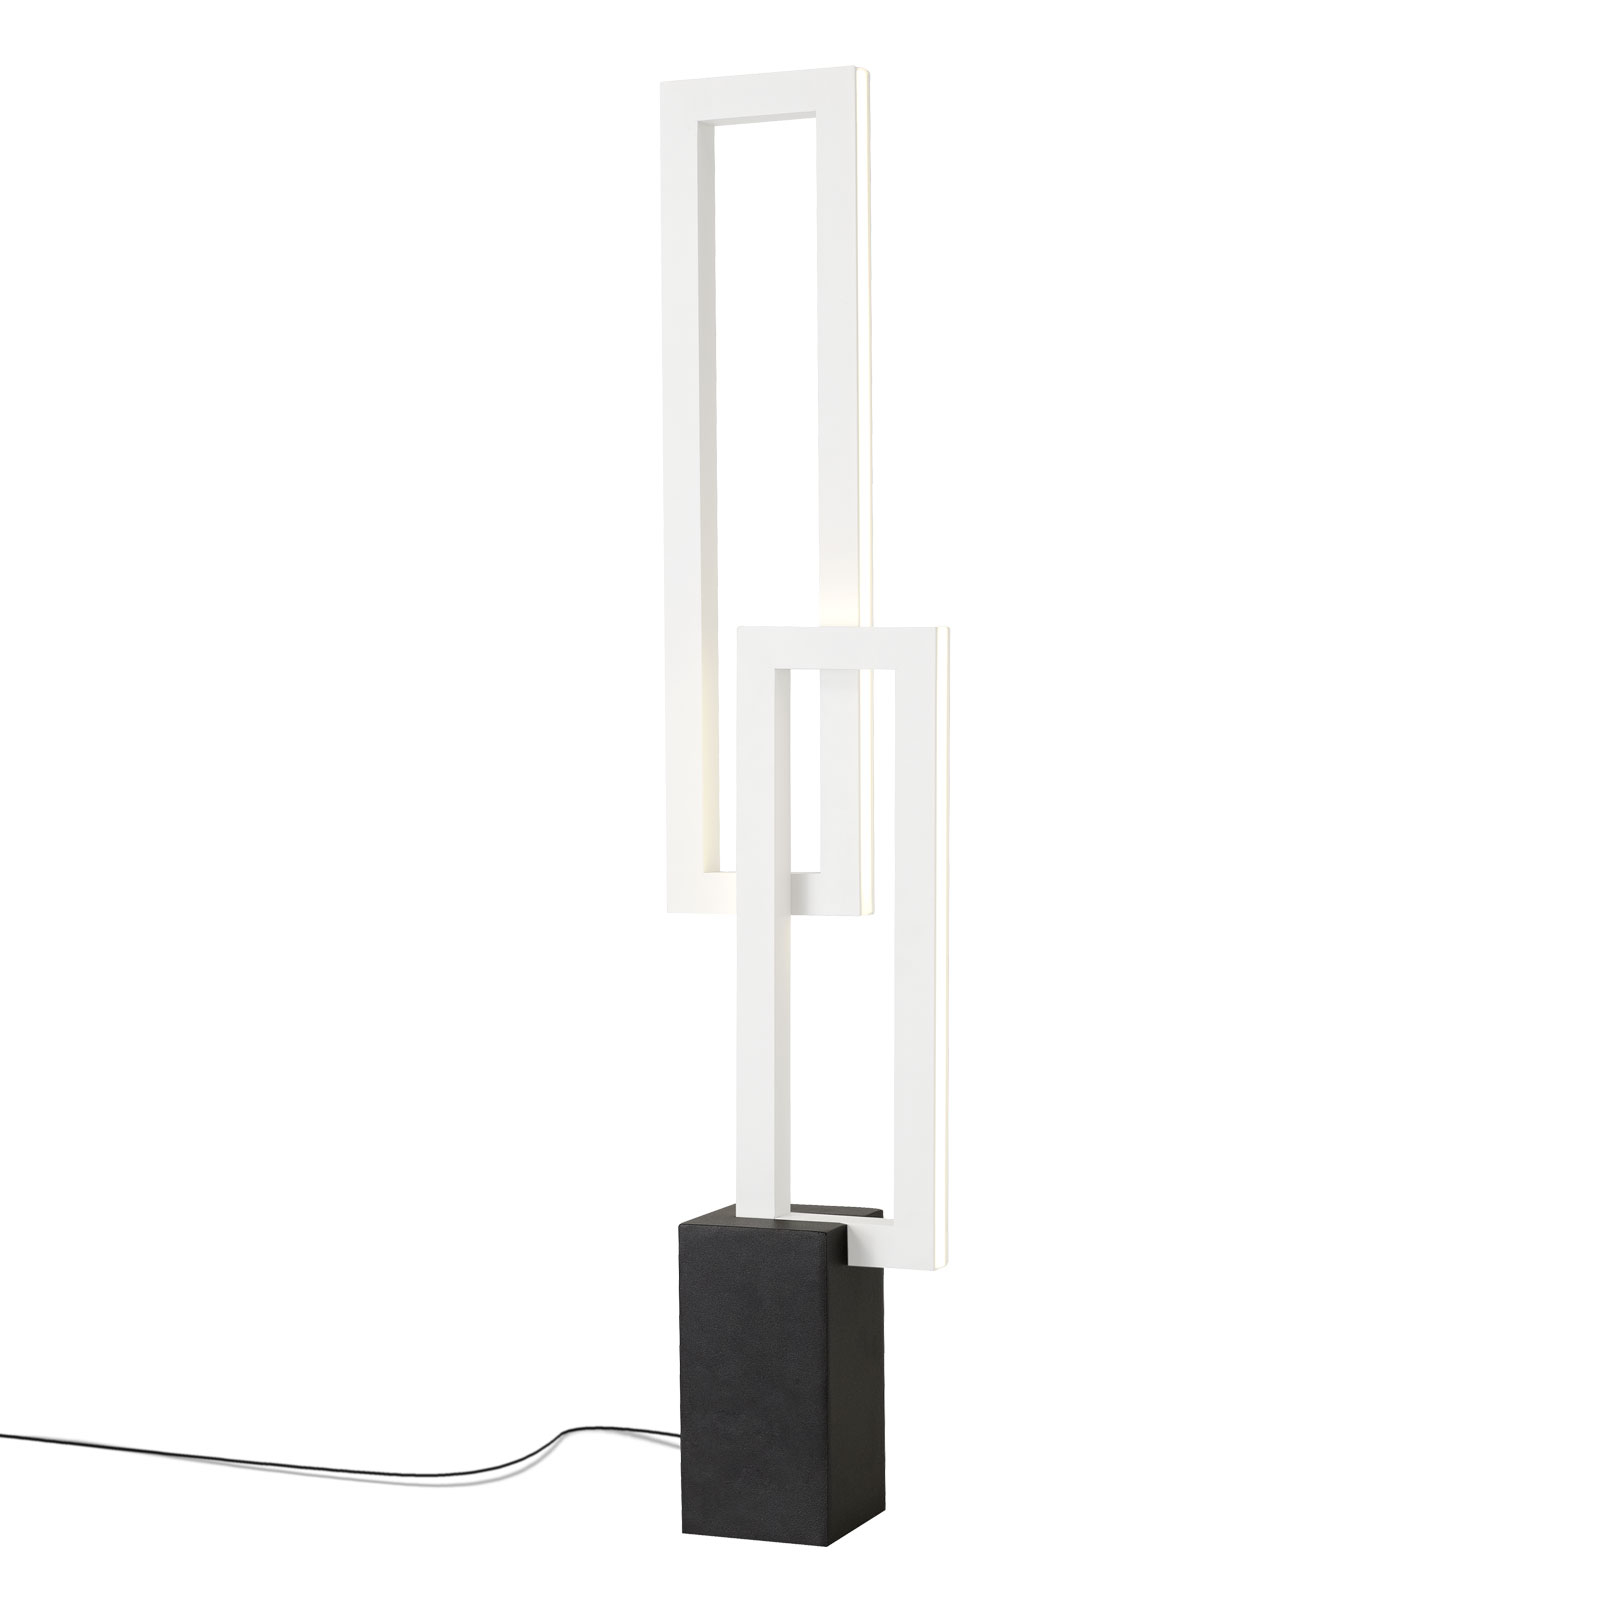 Lampe à poser LED Mural angulaire, blanc